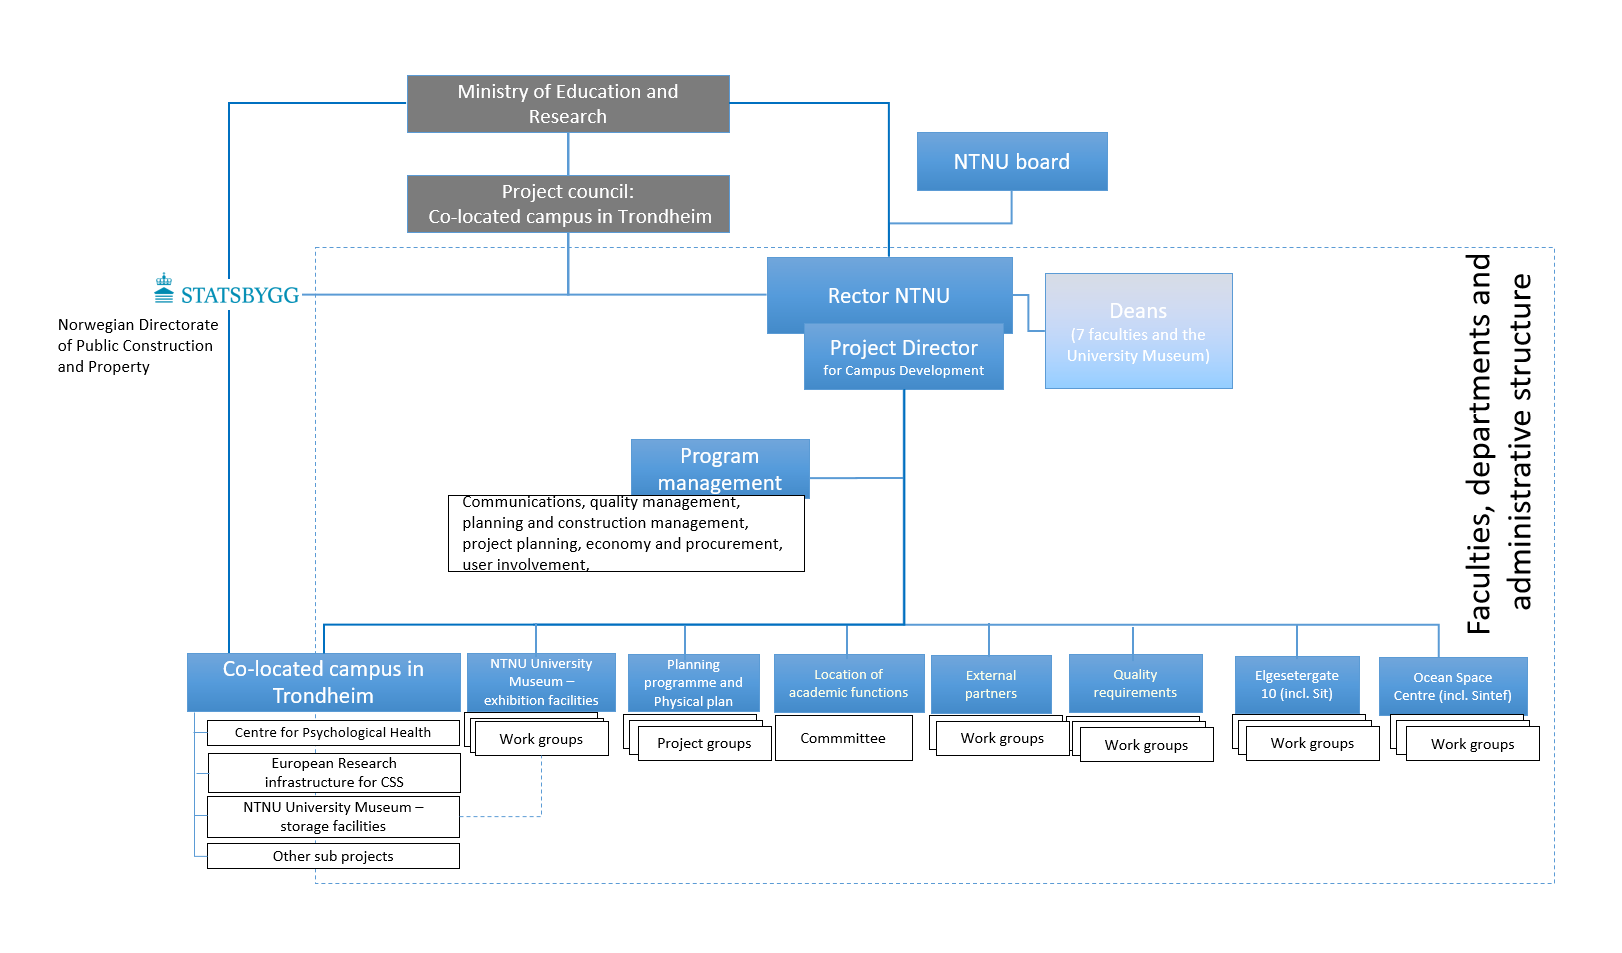 Organization chart for NTNU Campus Development